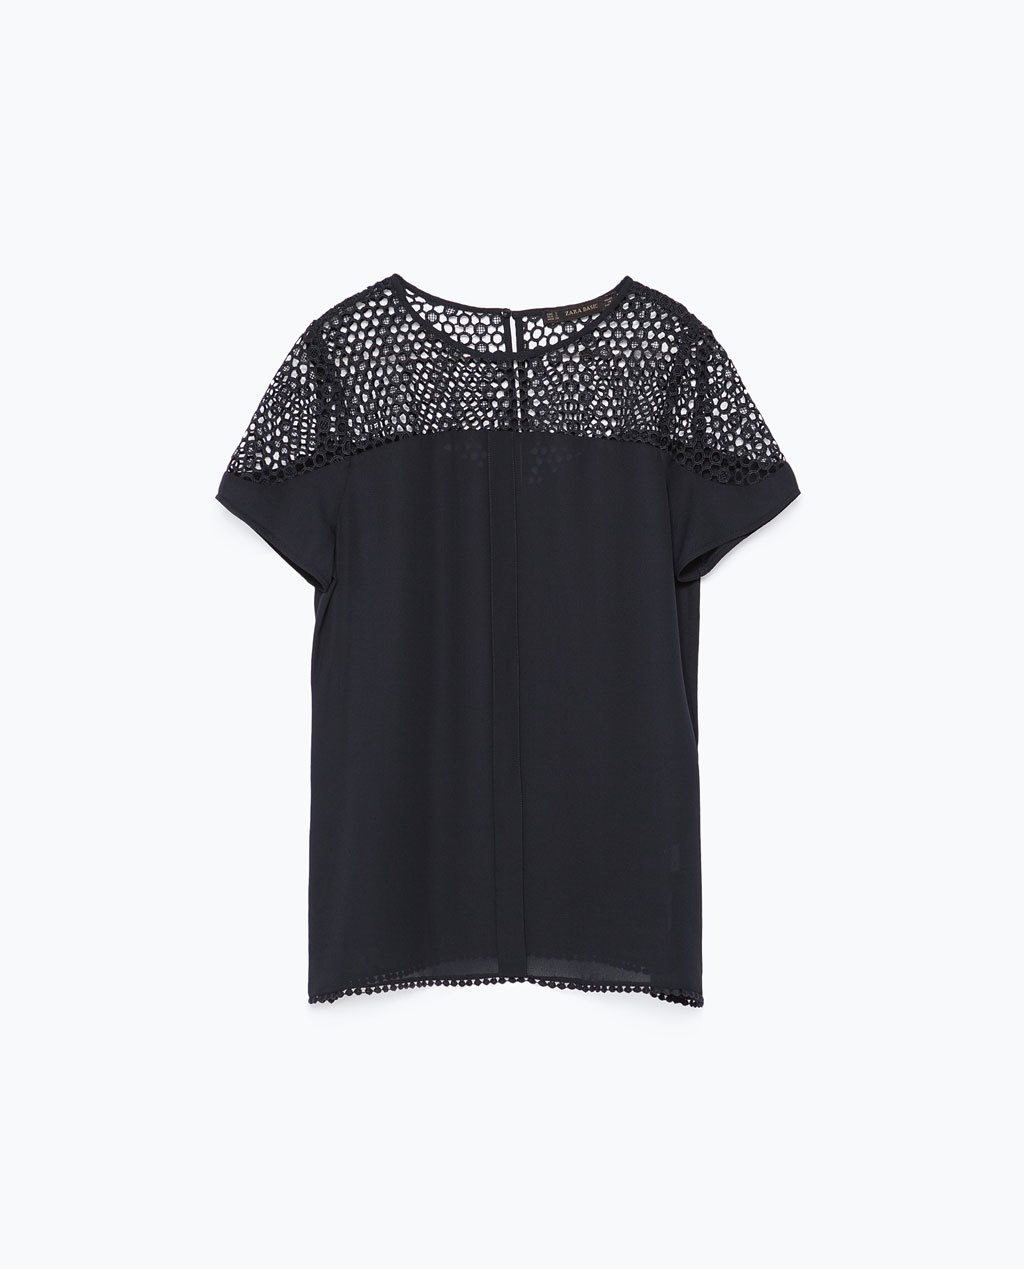 Guipure Lace Top - pattern: plain; predominant colour: stone; occasions: casual, creative work; length: standard; style: top; fit: straight cut; neckline: crew; sleeve length: short sleeve; sleeve style: standard; texture group: crepes; embellishment: lace; shoulder detail: sheer at shoulder; season: s/s 2015; wardrobe: highlight